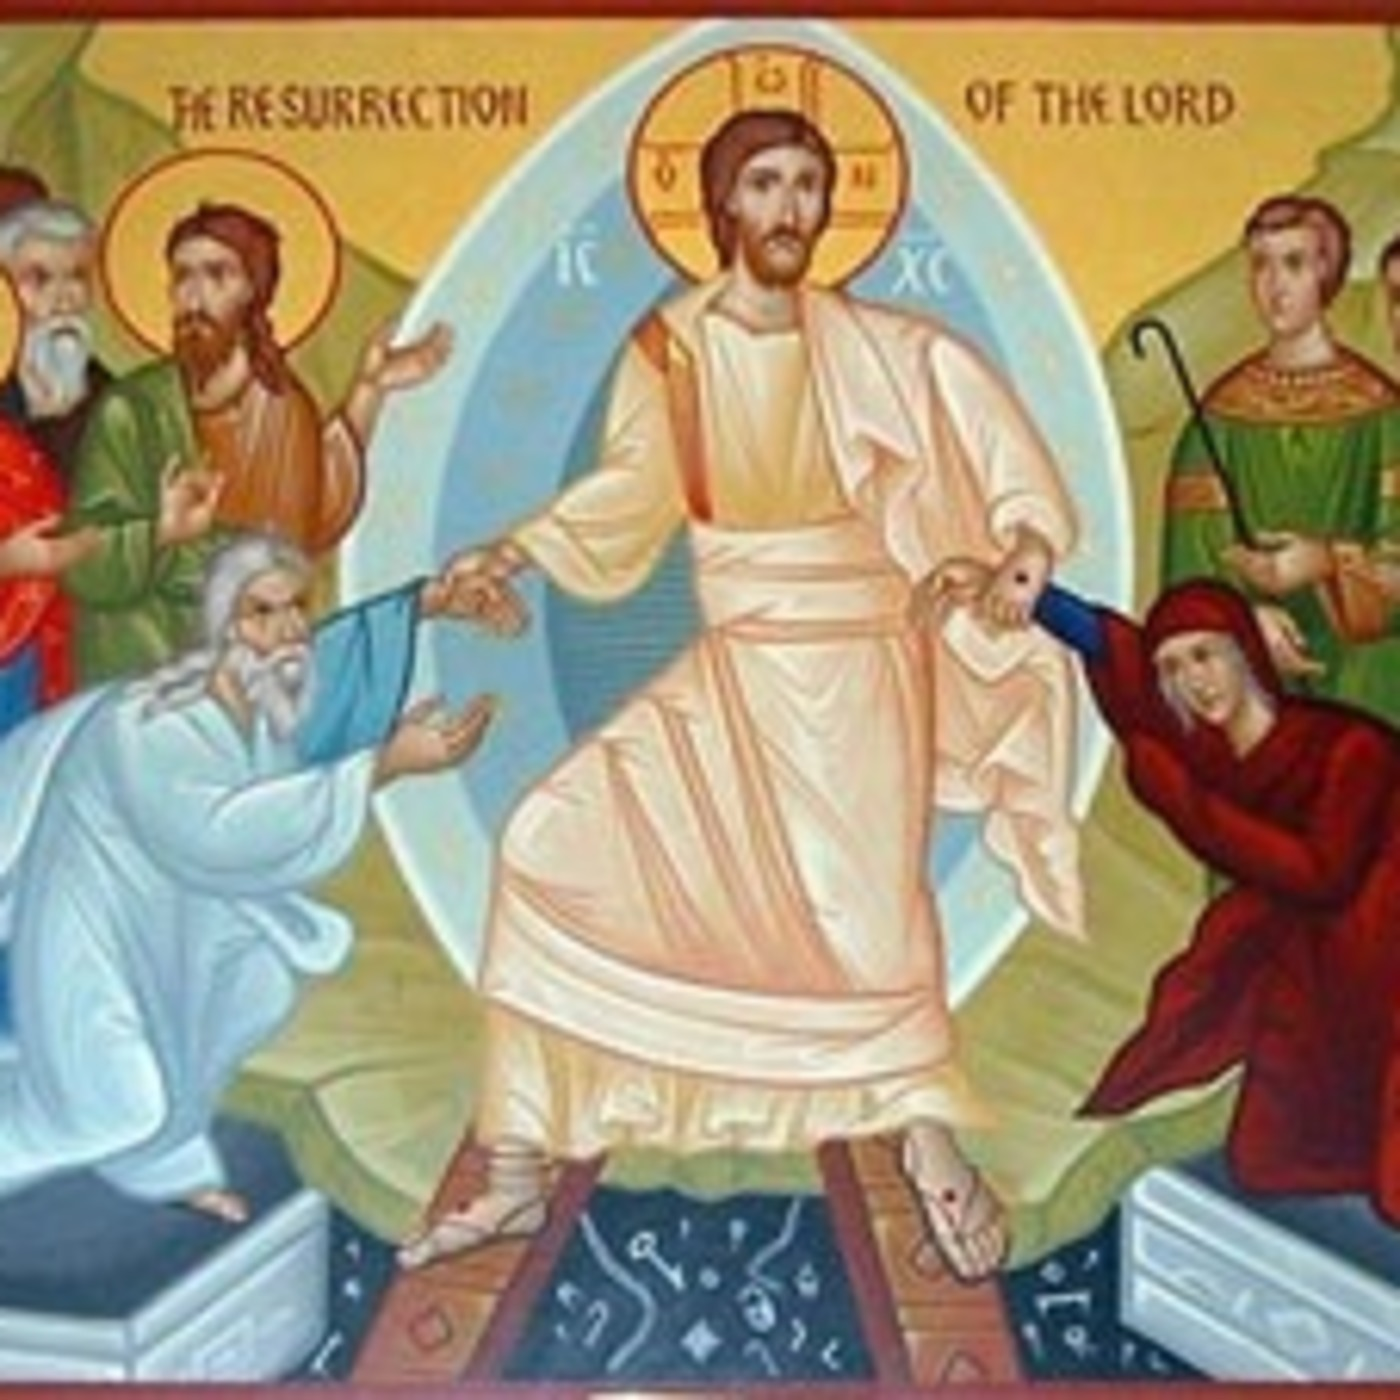 2018 Easter 6th Sunday Fr  Bryan Ochs' Weekly Homily podcast